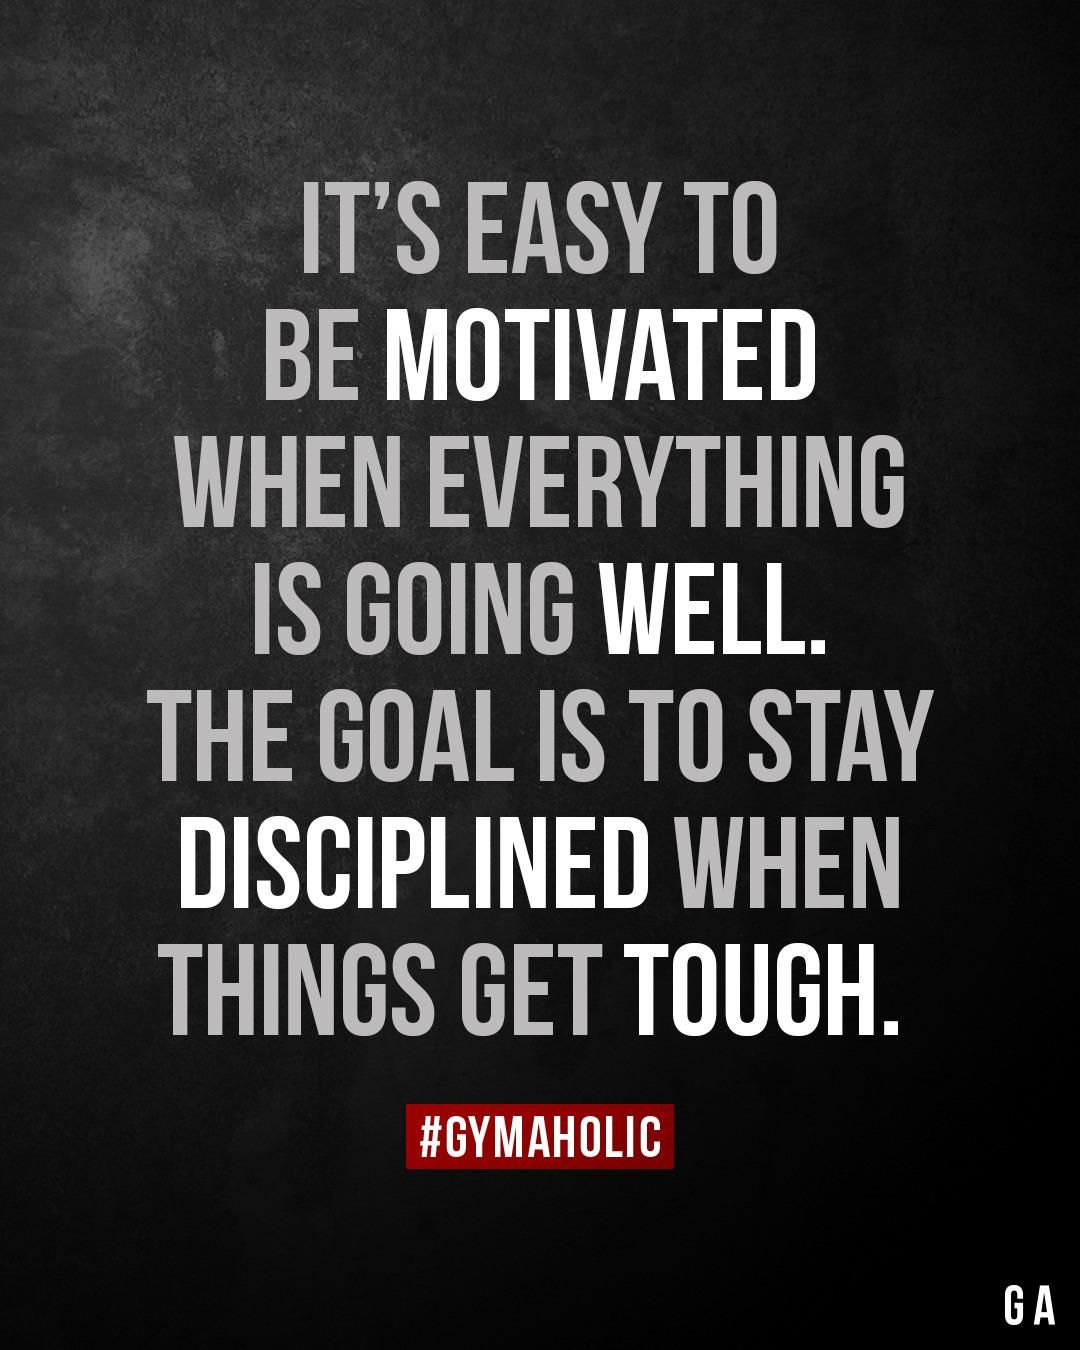 It's easy to be motivated when everything is going well